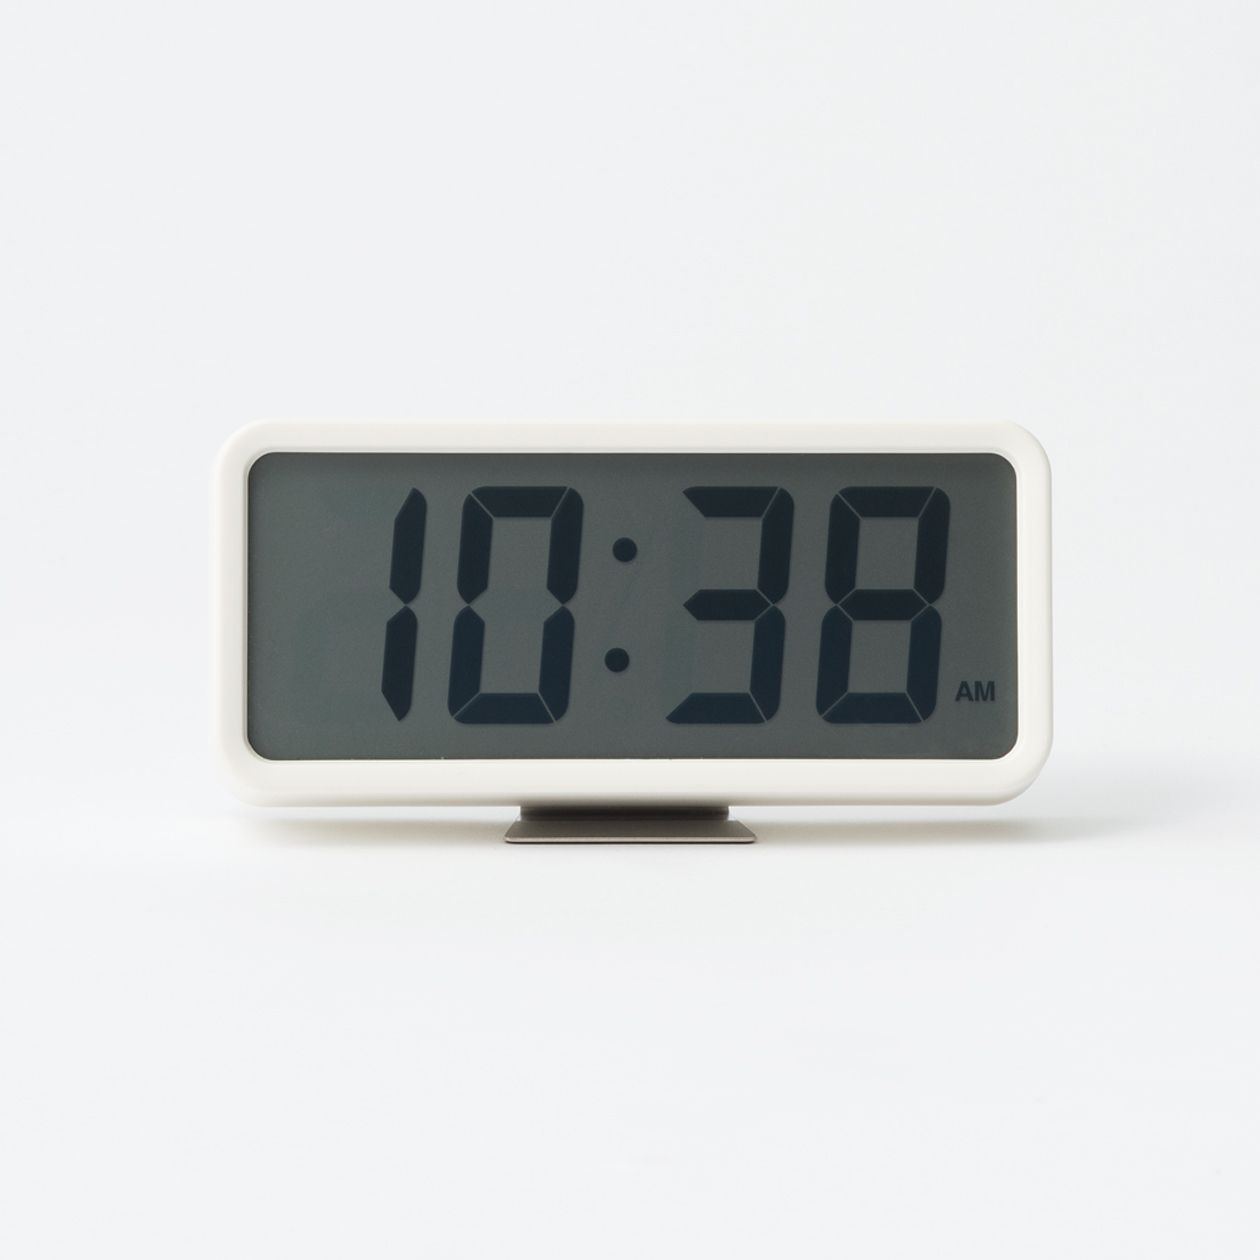 Digital Clock M With Alarm Oc274w White Muji Alarm Clock